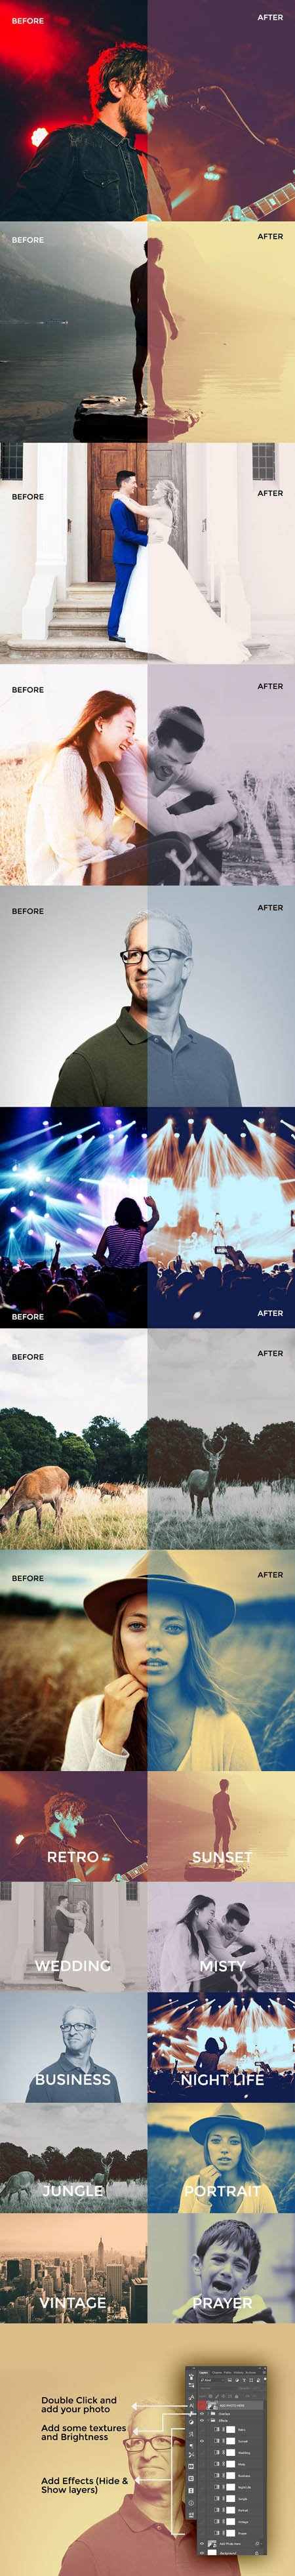 10 Photo Effects PSD Templates